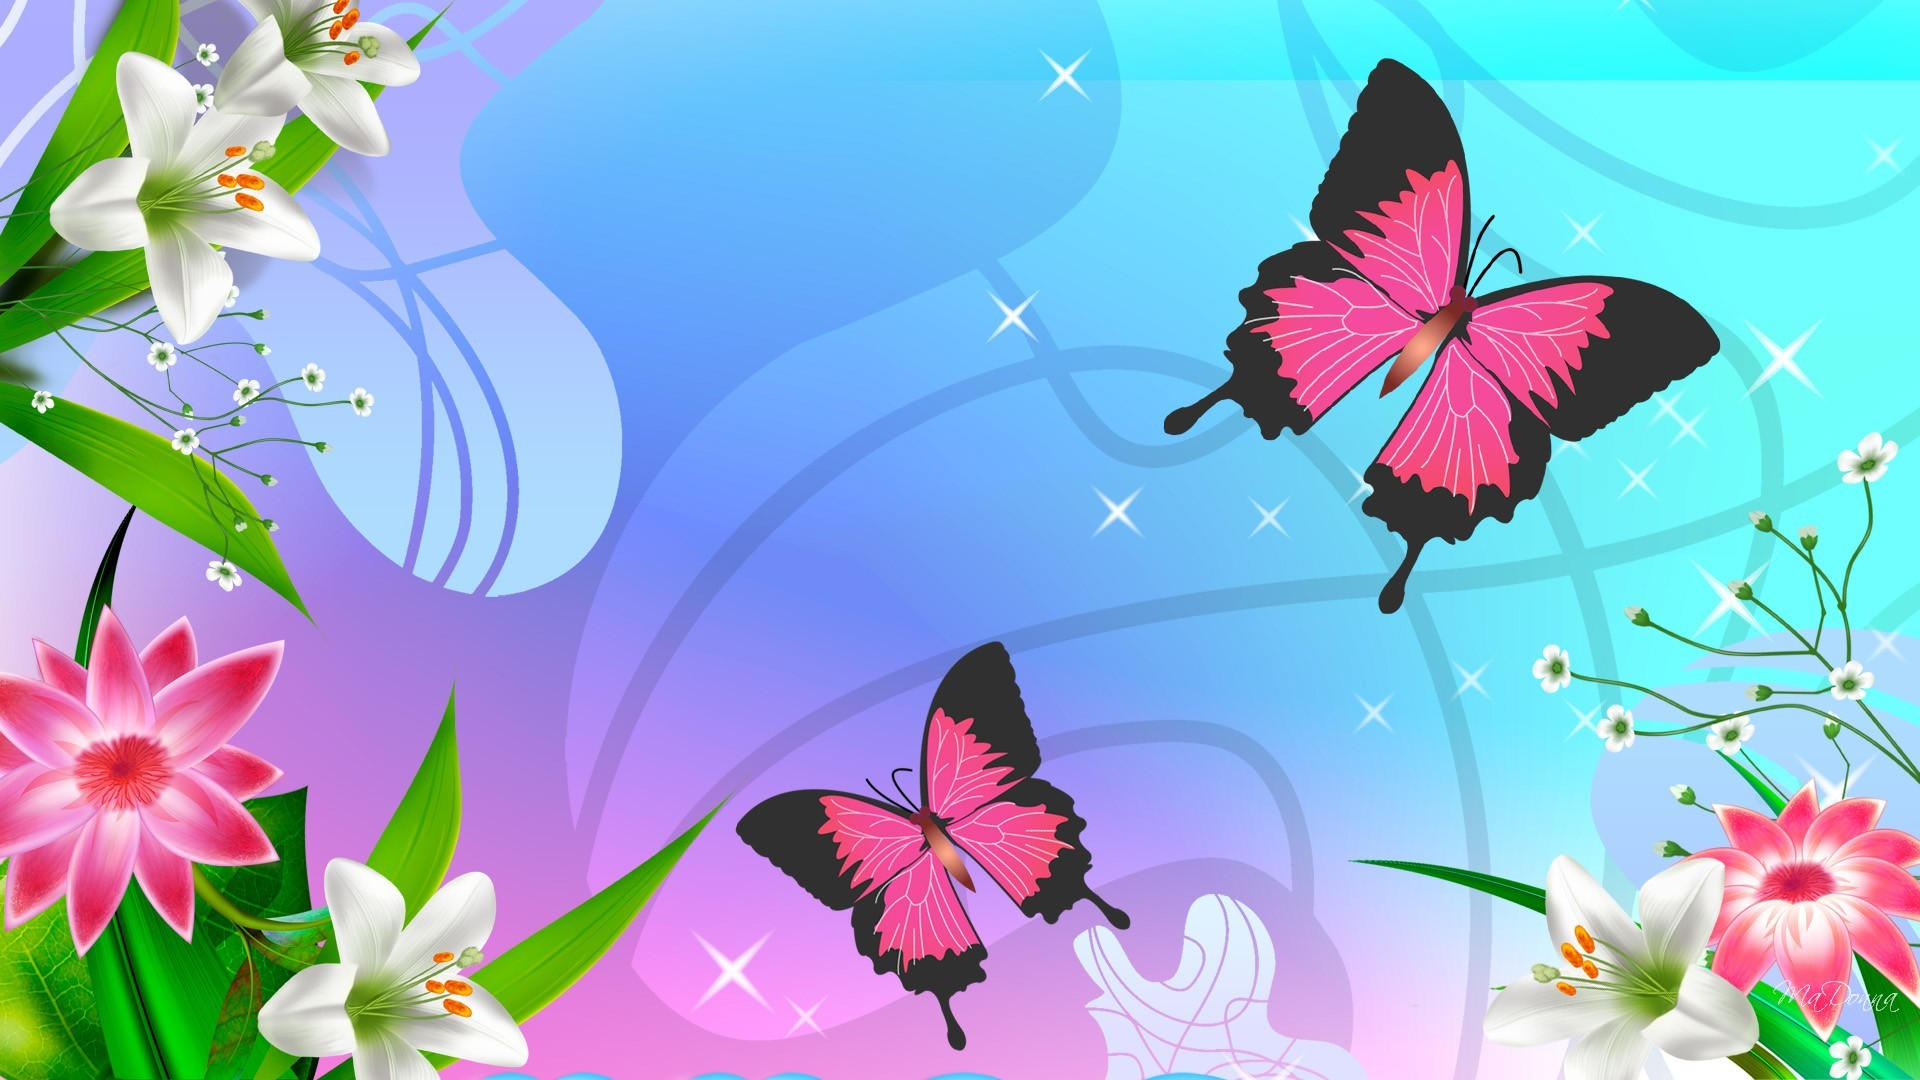 Download From Cute Butterfly Wallpaper 1920x1080 Full HD Wallpapers 1920x1080